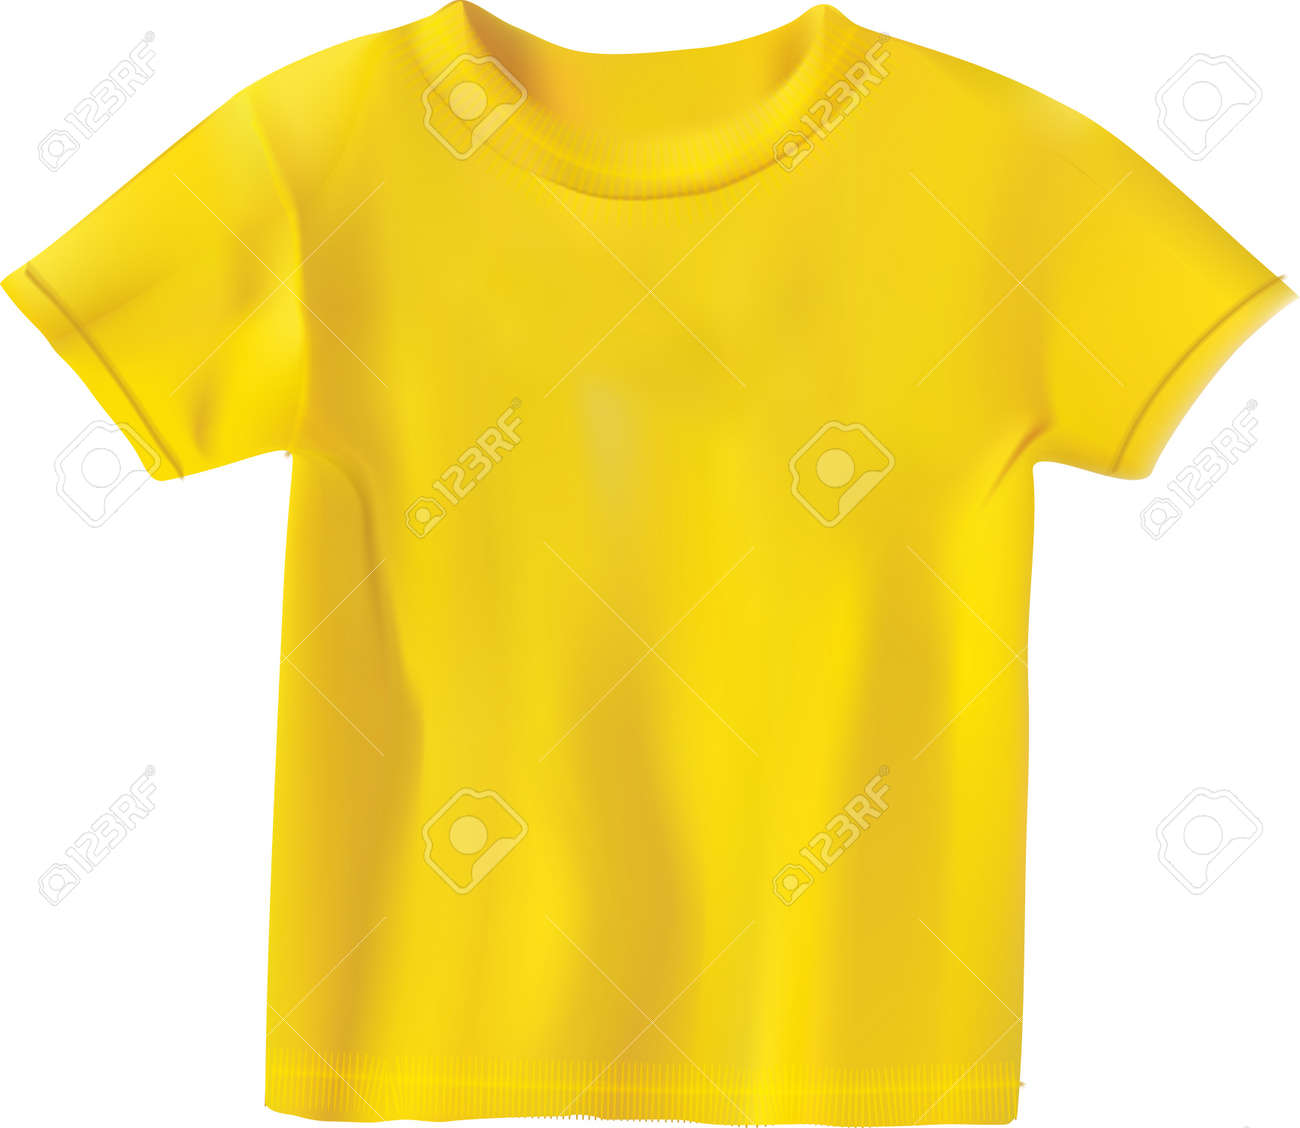 Yellow T-shirt Design Template Royalty Free Cliparts, Vectors, And ...